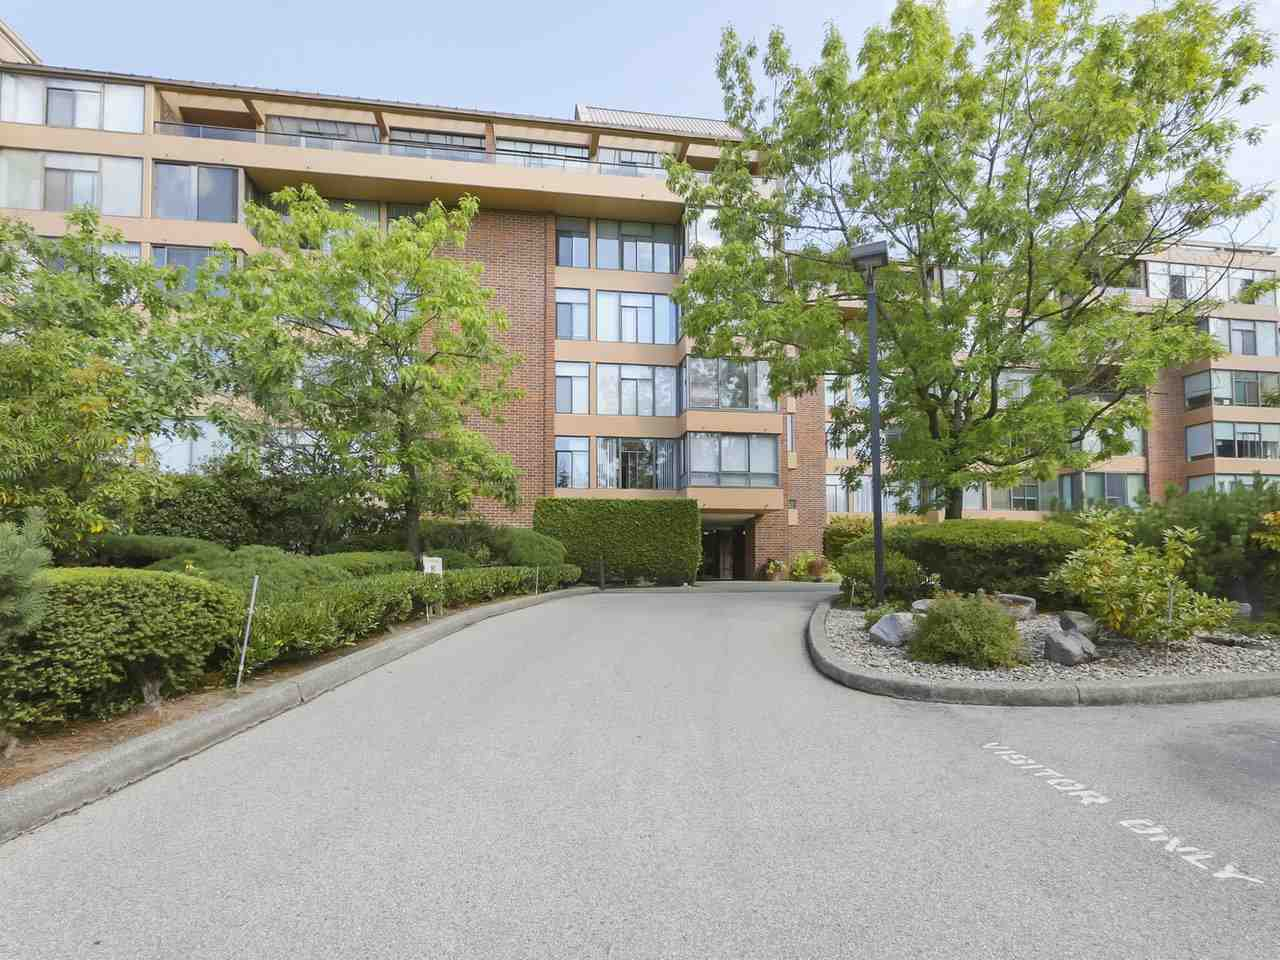 "Main Photo: 310 2101 MCMULLEN Avenue in Vancouver: Quilchena Condo for sale in ""Arbutus Village"" (Vancouver West)  : MLS®# R2478885"